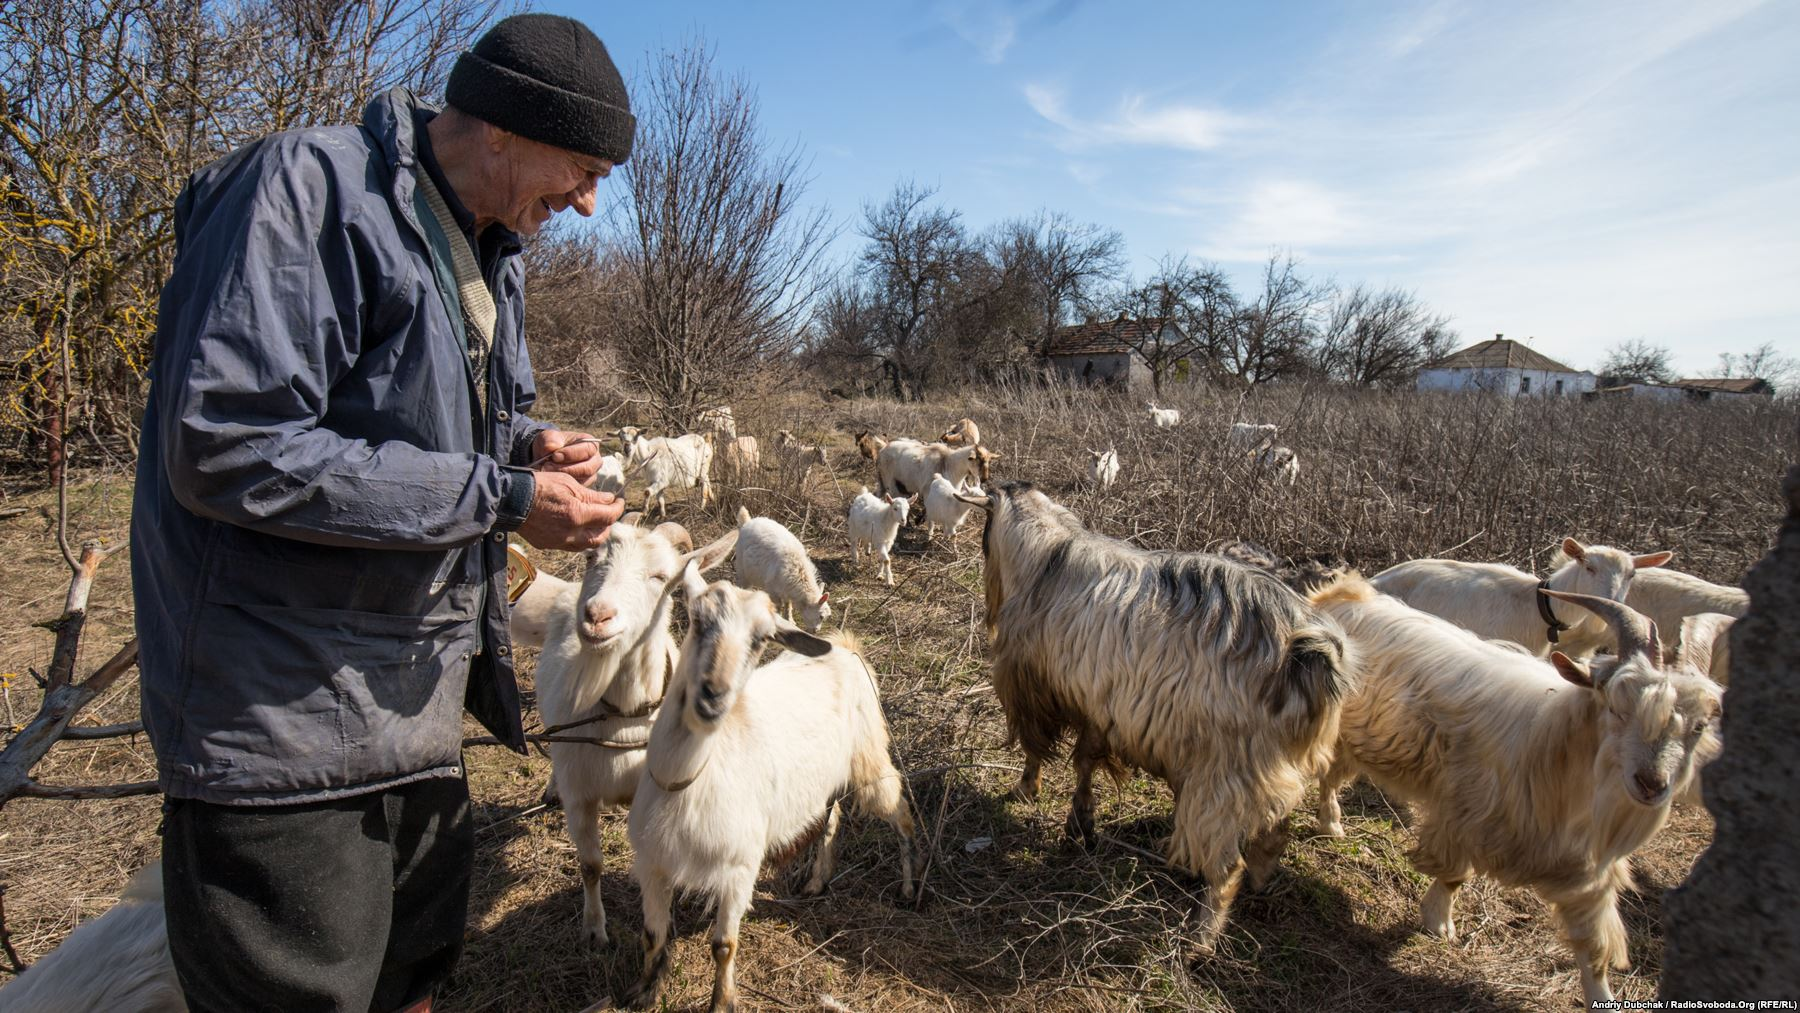 "Mykola Ivanovych is one of 10 locals who opted to stay in the now militarized village. The 71-year-old looks after his 30 goats and sells milk mostly to Ukrainian soldiers. Photographer Dubchak says the goats remain highly sensitive to the fighting. ""As soon as they hear shooting they run in the opposite direction."" The flock has also been known to influence the fighting by clustering around concealed Ukrainian sniper positions, braying for food. ""As a result the sniper has to change his firing position"" Dubchak says."